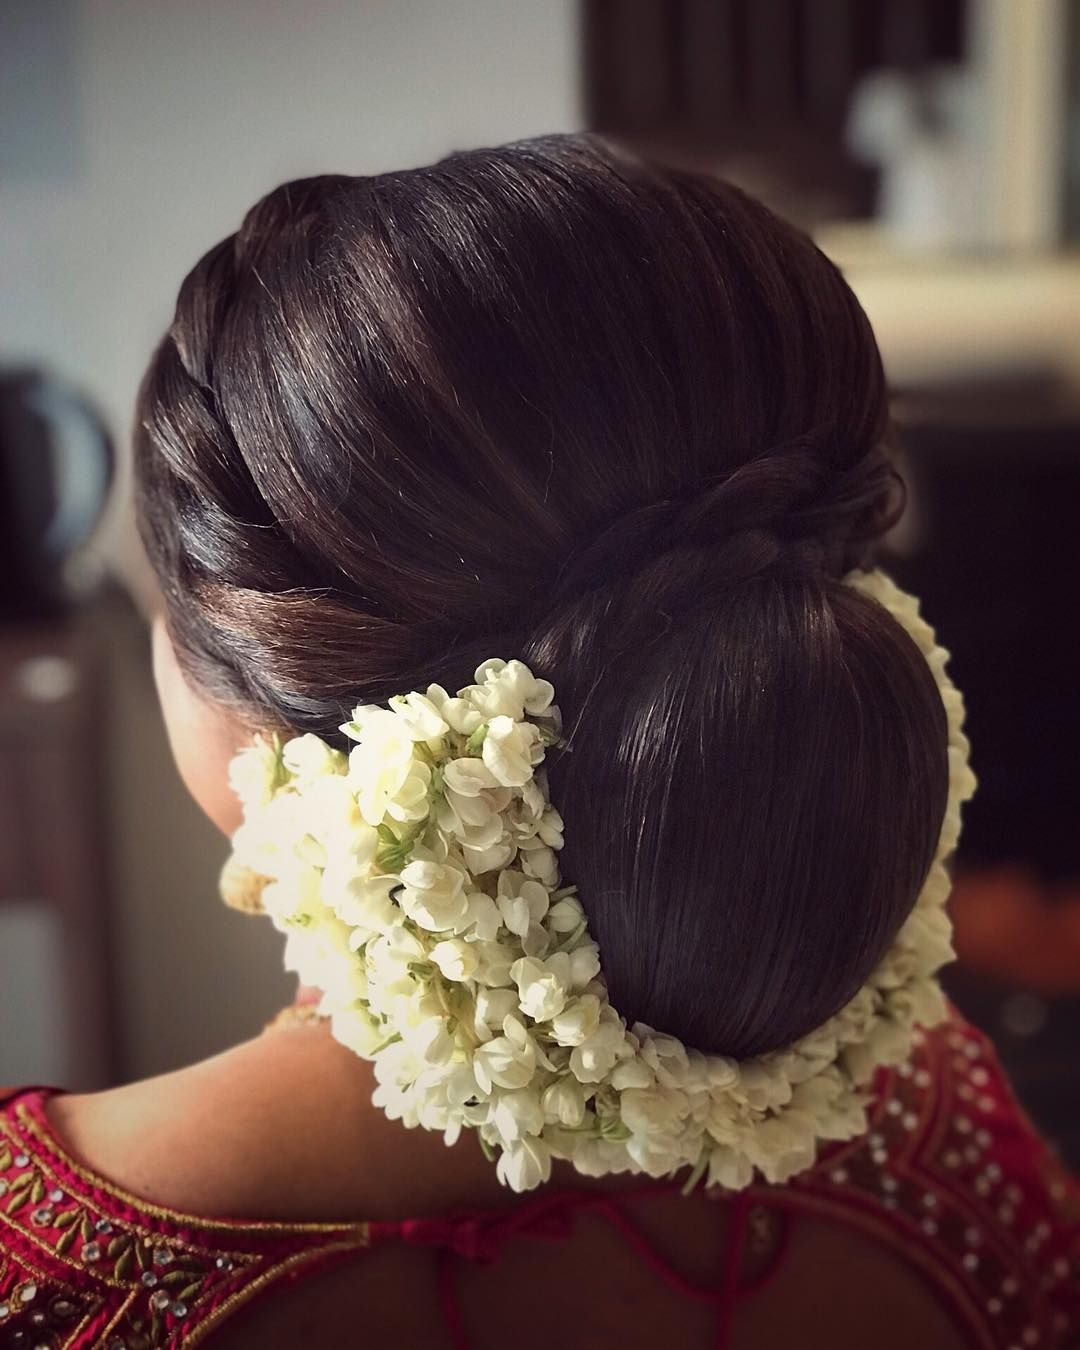 Here S A Gorgeous Bridal Hair On Our Bride And A Huge Thank You For All The Love That Came In To Her Bridal Hair Buns Bridal Hairdo Wedding Hairstyles Updo